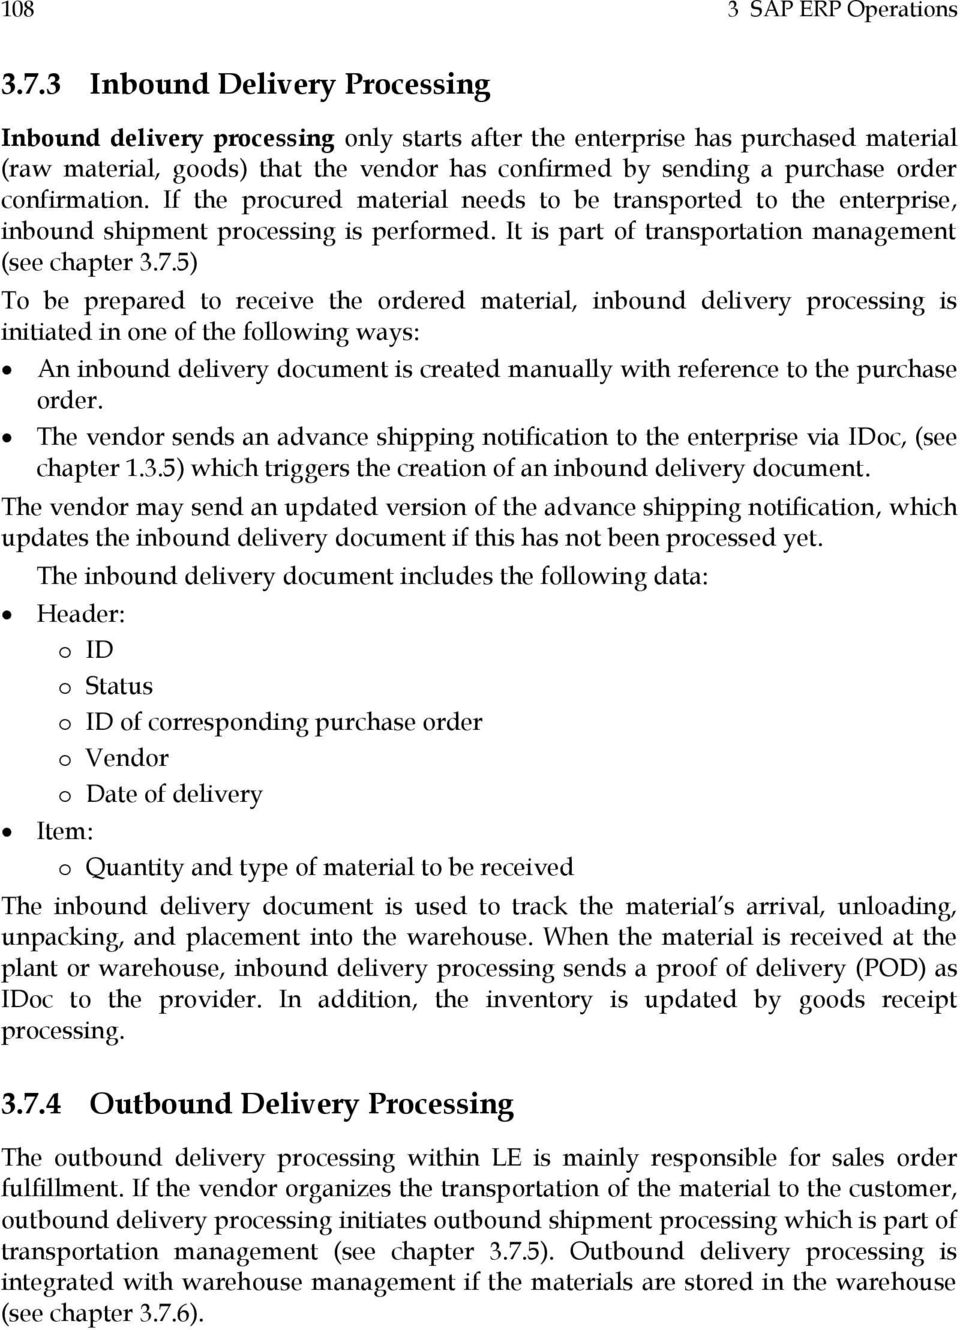 If the procured material needs to be transported to the enterprise, inbound shipment processing is performed. It is part of transportation management (see chapter 3.7.